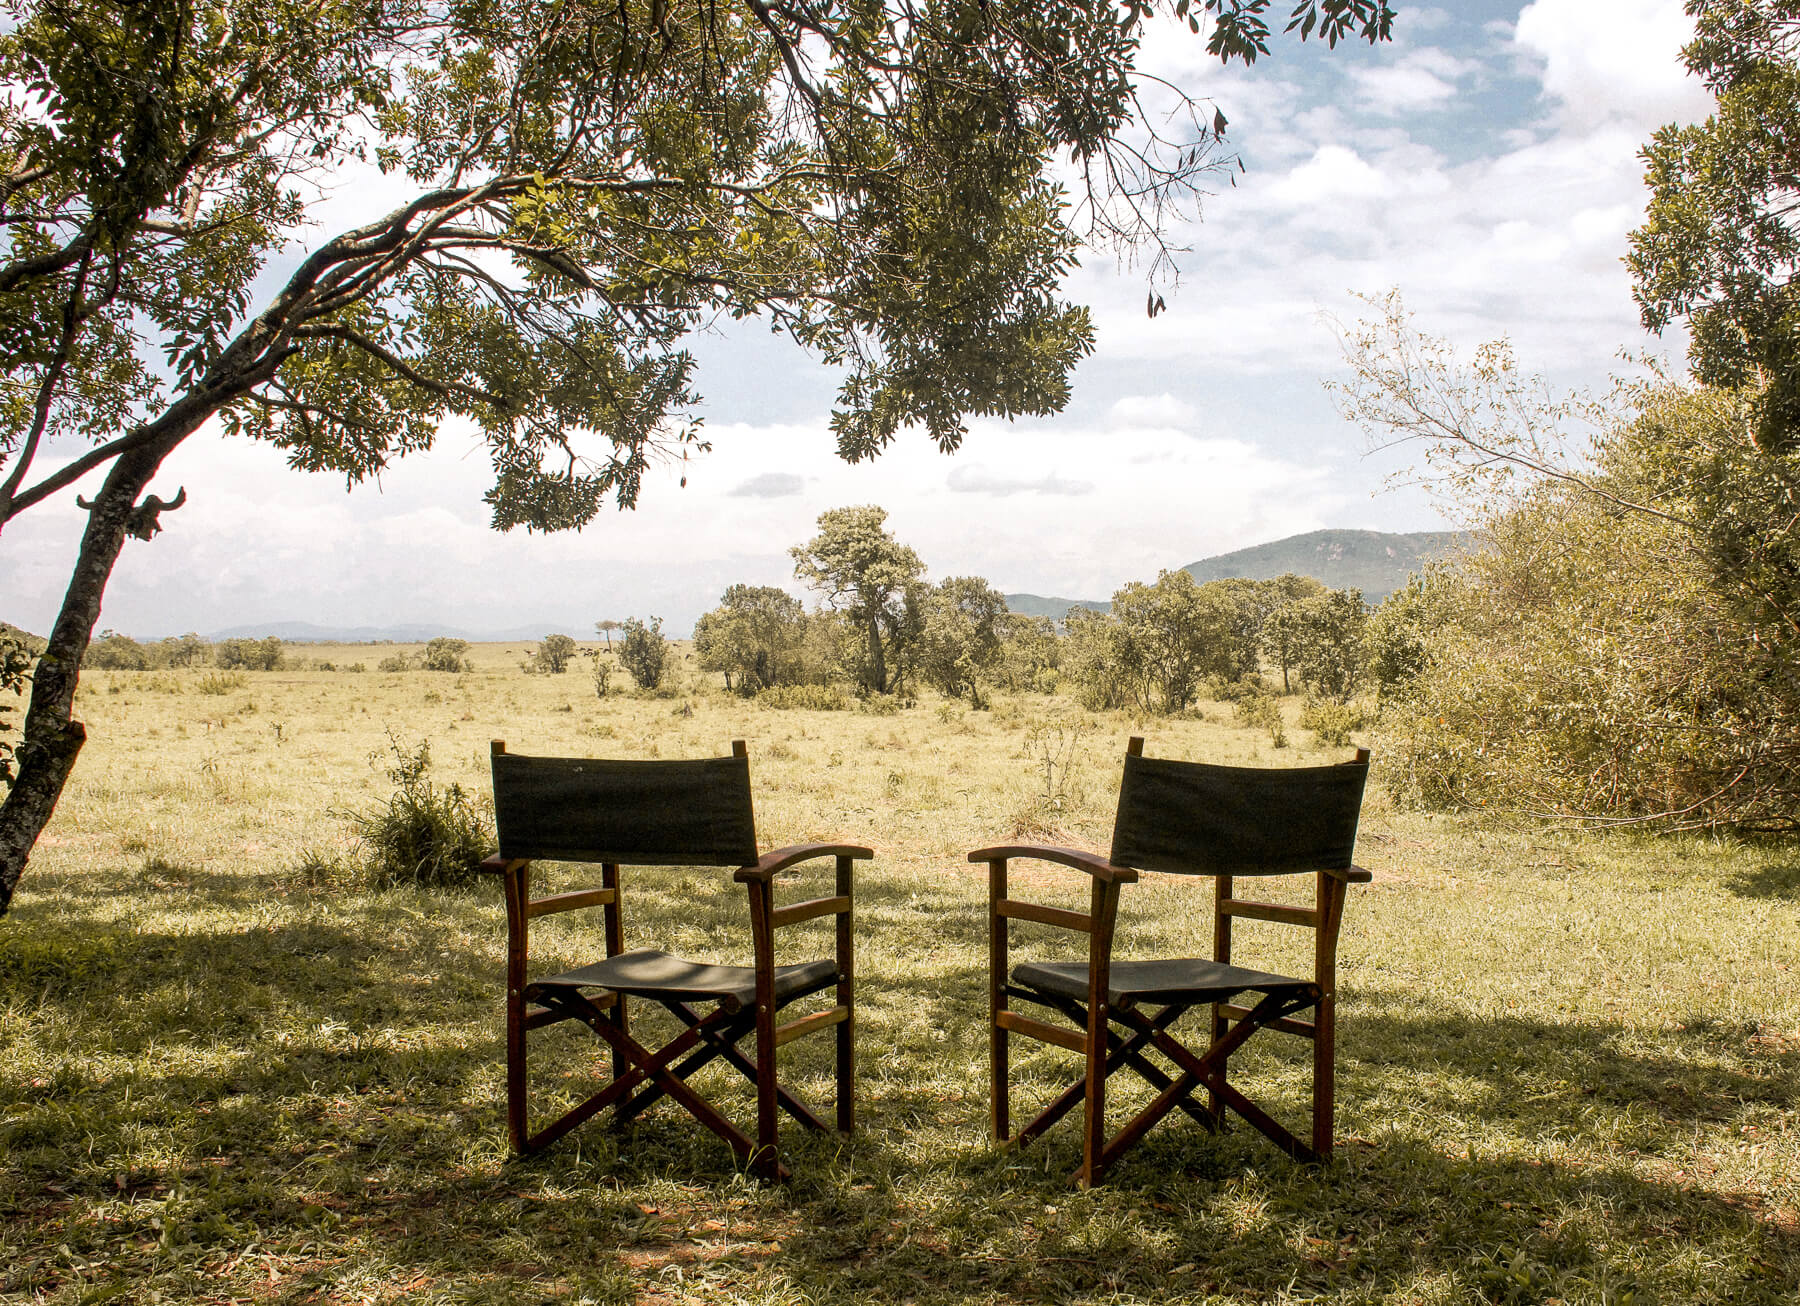 2 chairs under a tree overlooking the plains of the Maasai Mara - The best of the masai mara camps